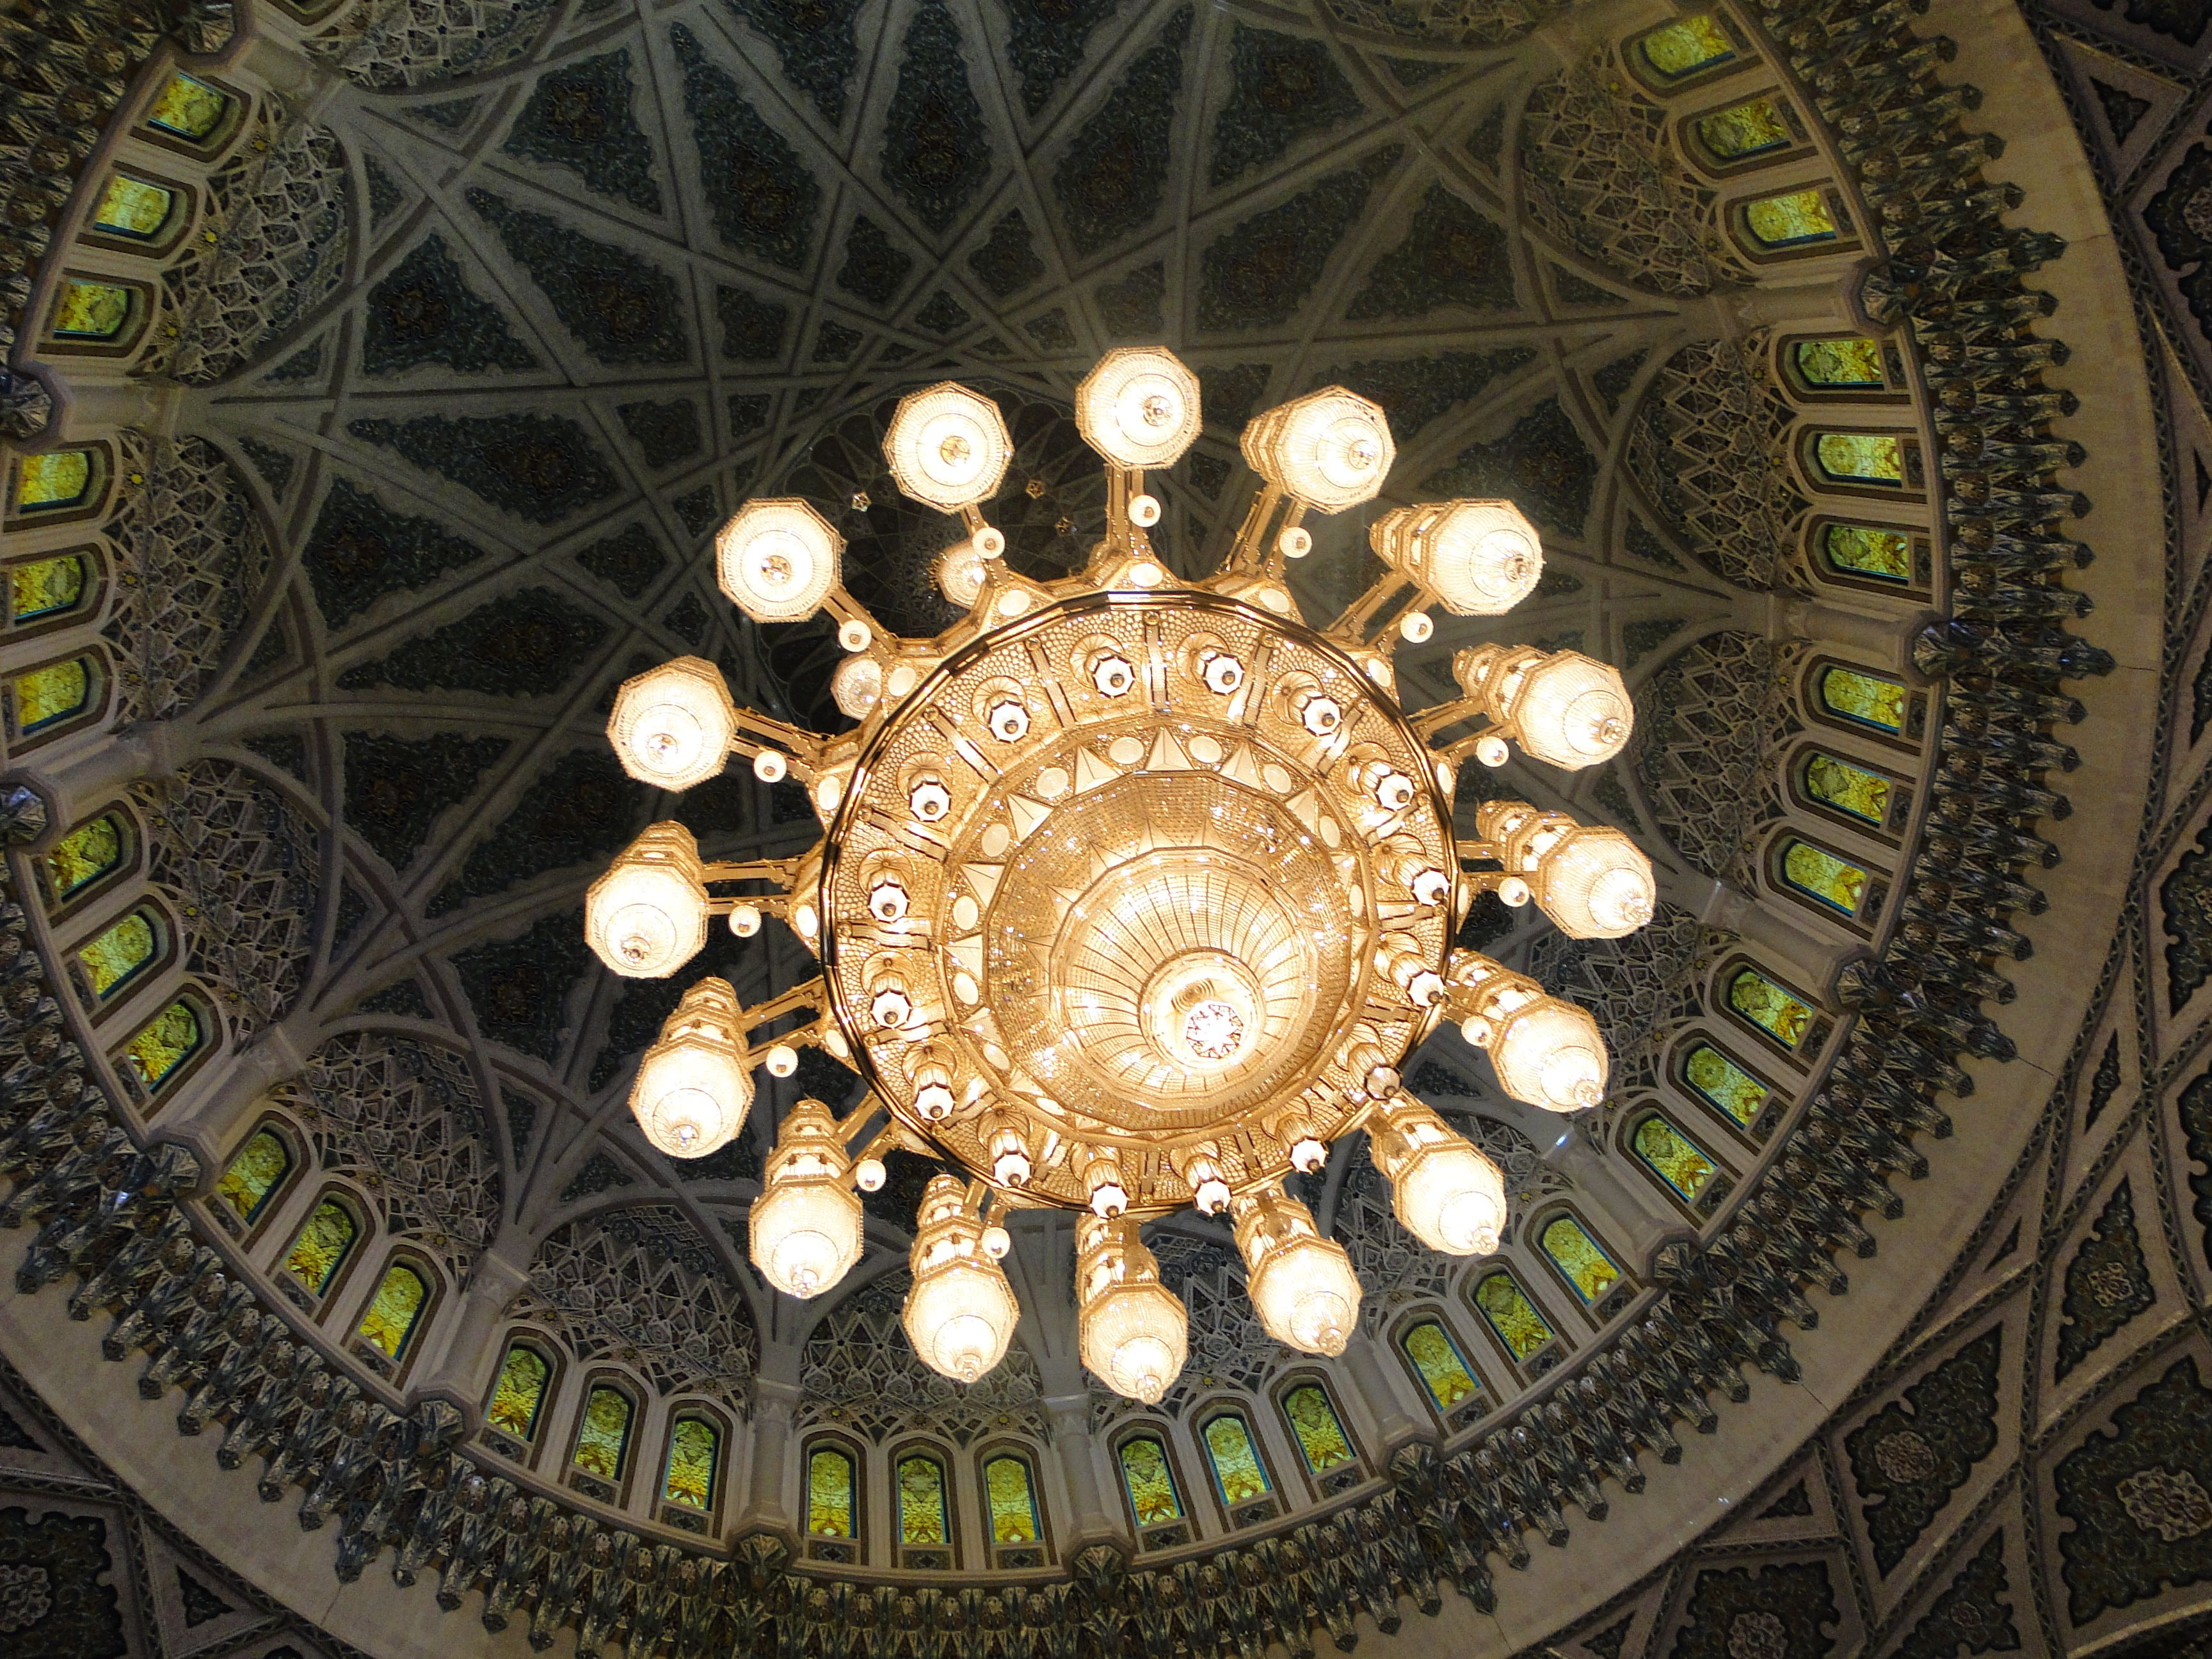 One of the worlds largest chandeliers from underneath grand mosque one of the worlds largest chandeliers from underneath grand mosque muscat oman arubaitofo Image collections